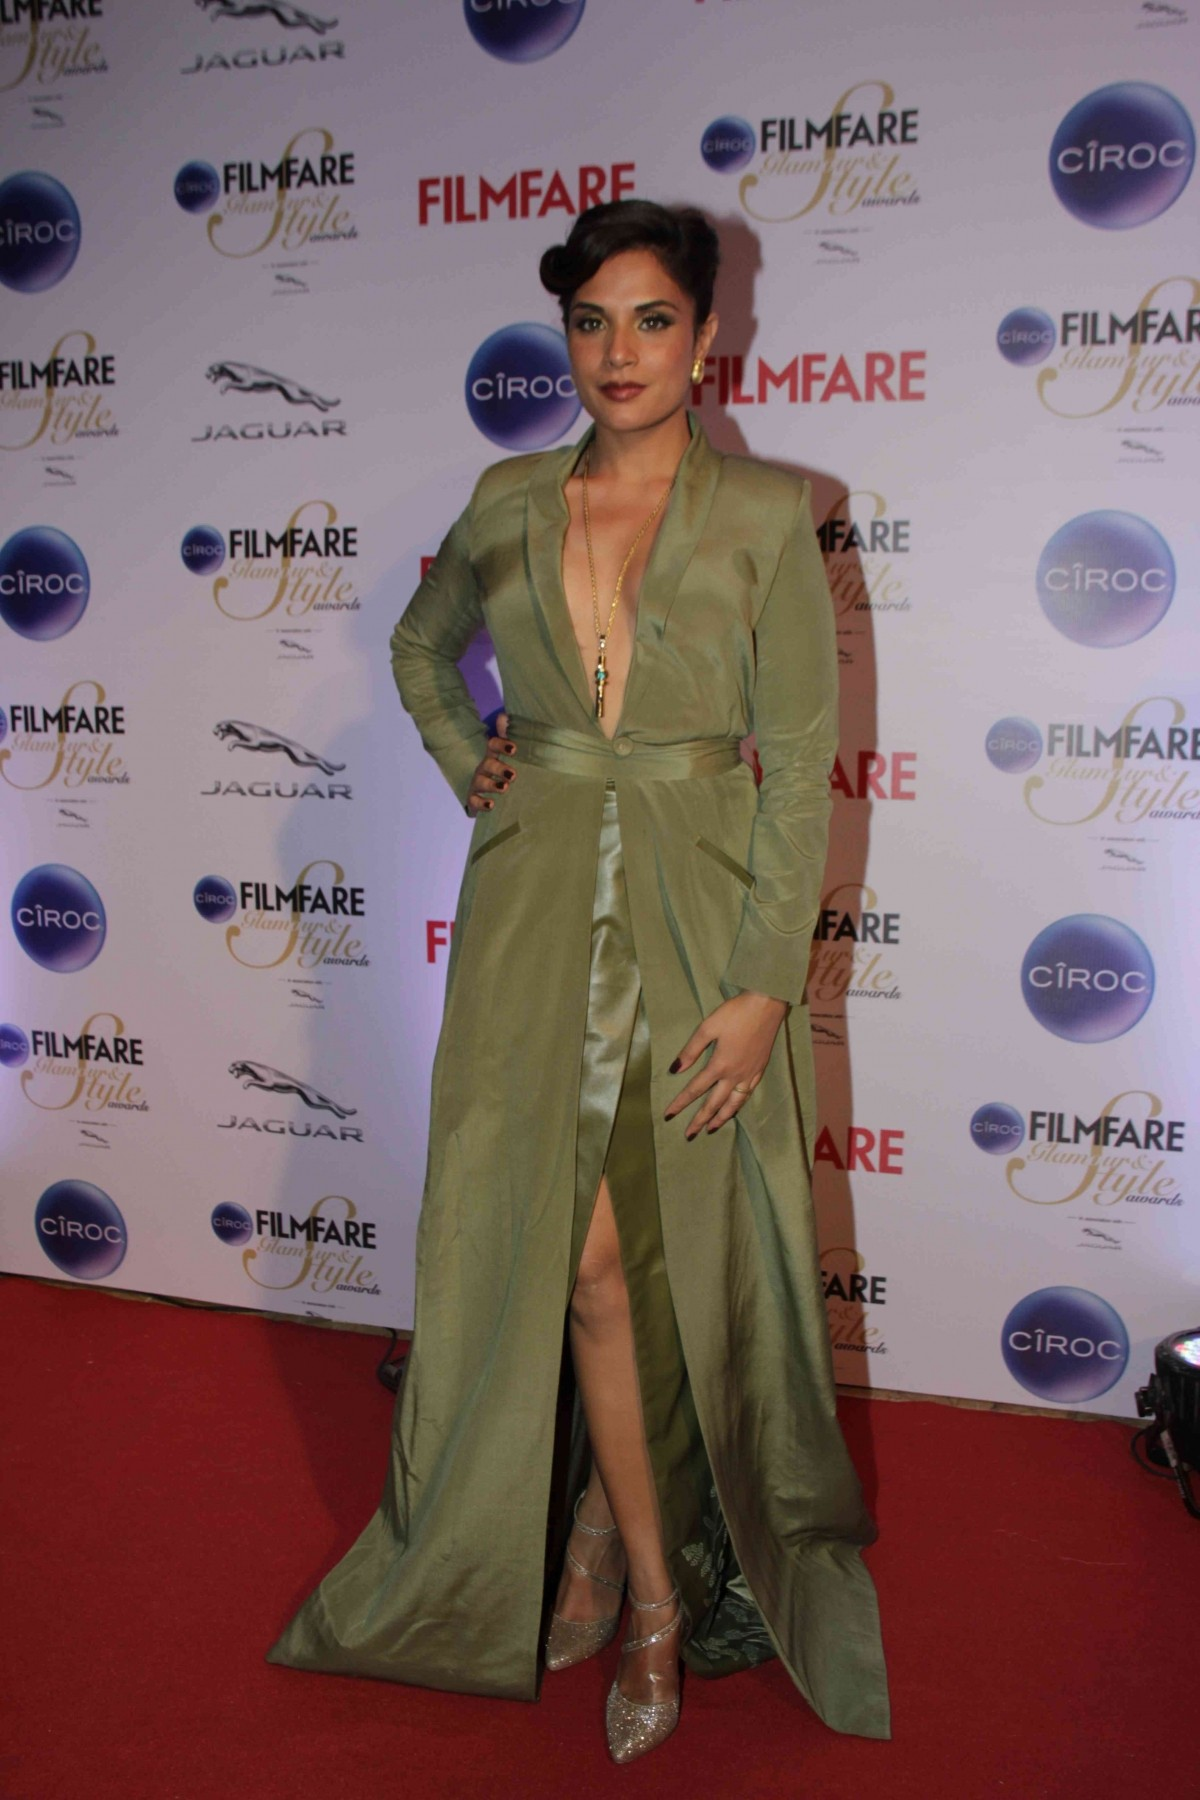 Kareena Kapoor Khan, Jacqueline Fernandez, Alia Bhatt and Other Best Dressed Divas at Filmfare Glamour And Style Awards 2015